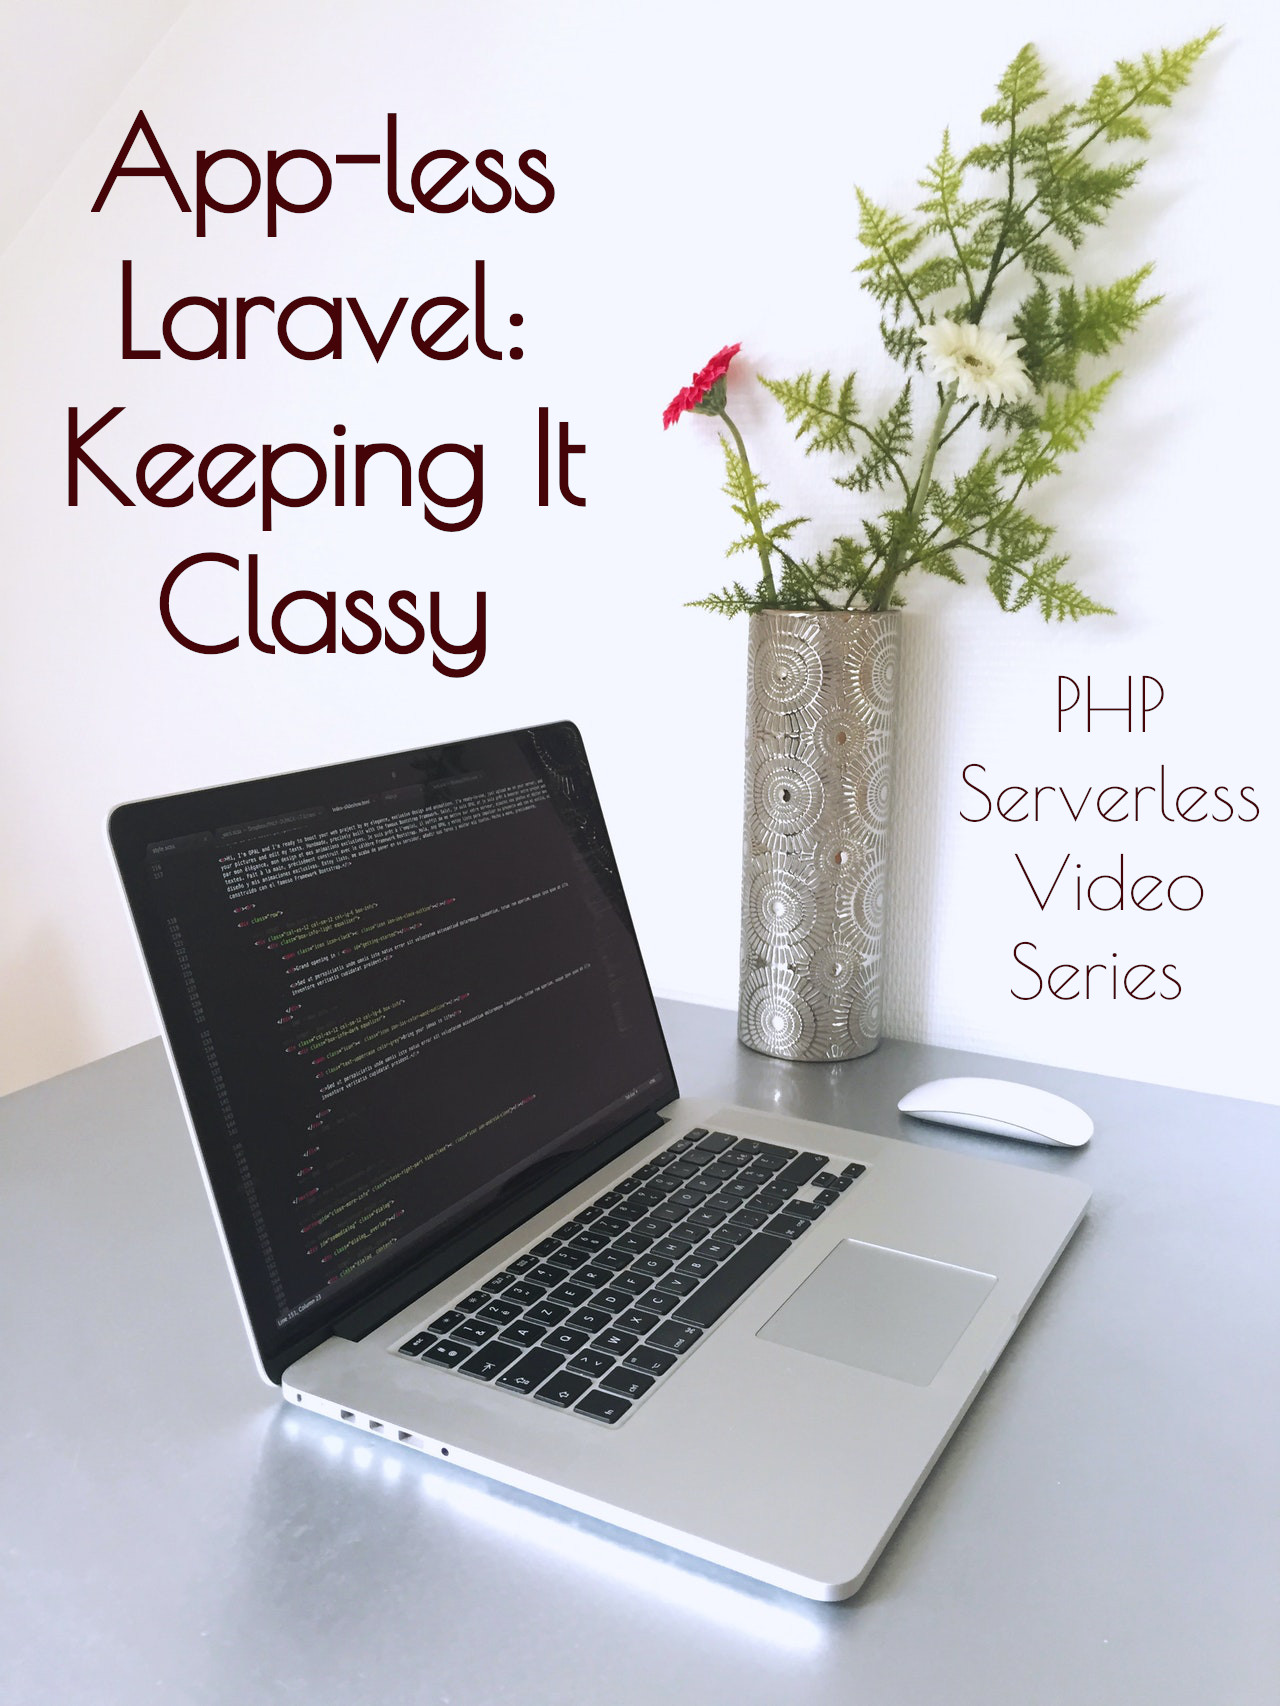 App-less Laravel:  Keeping It Classy